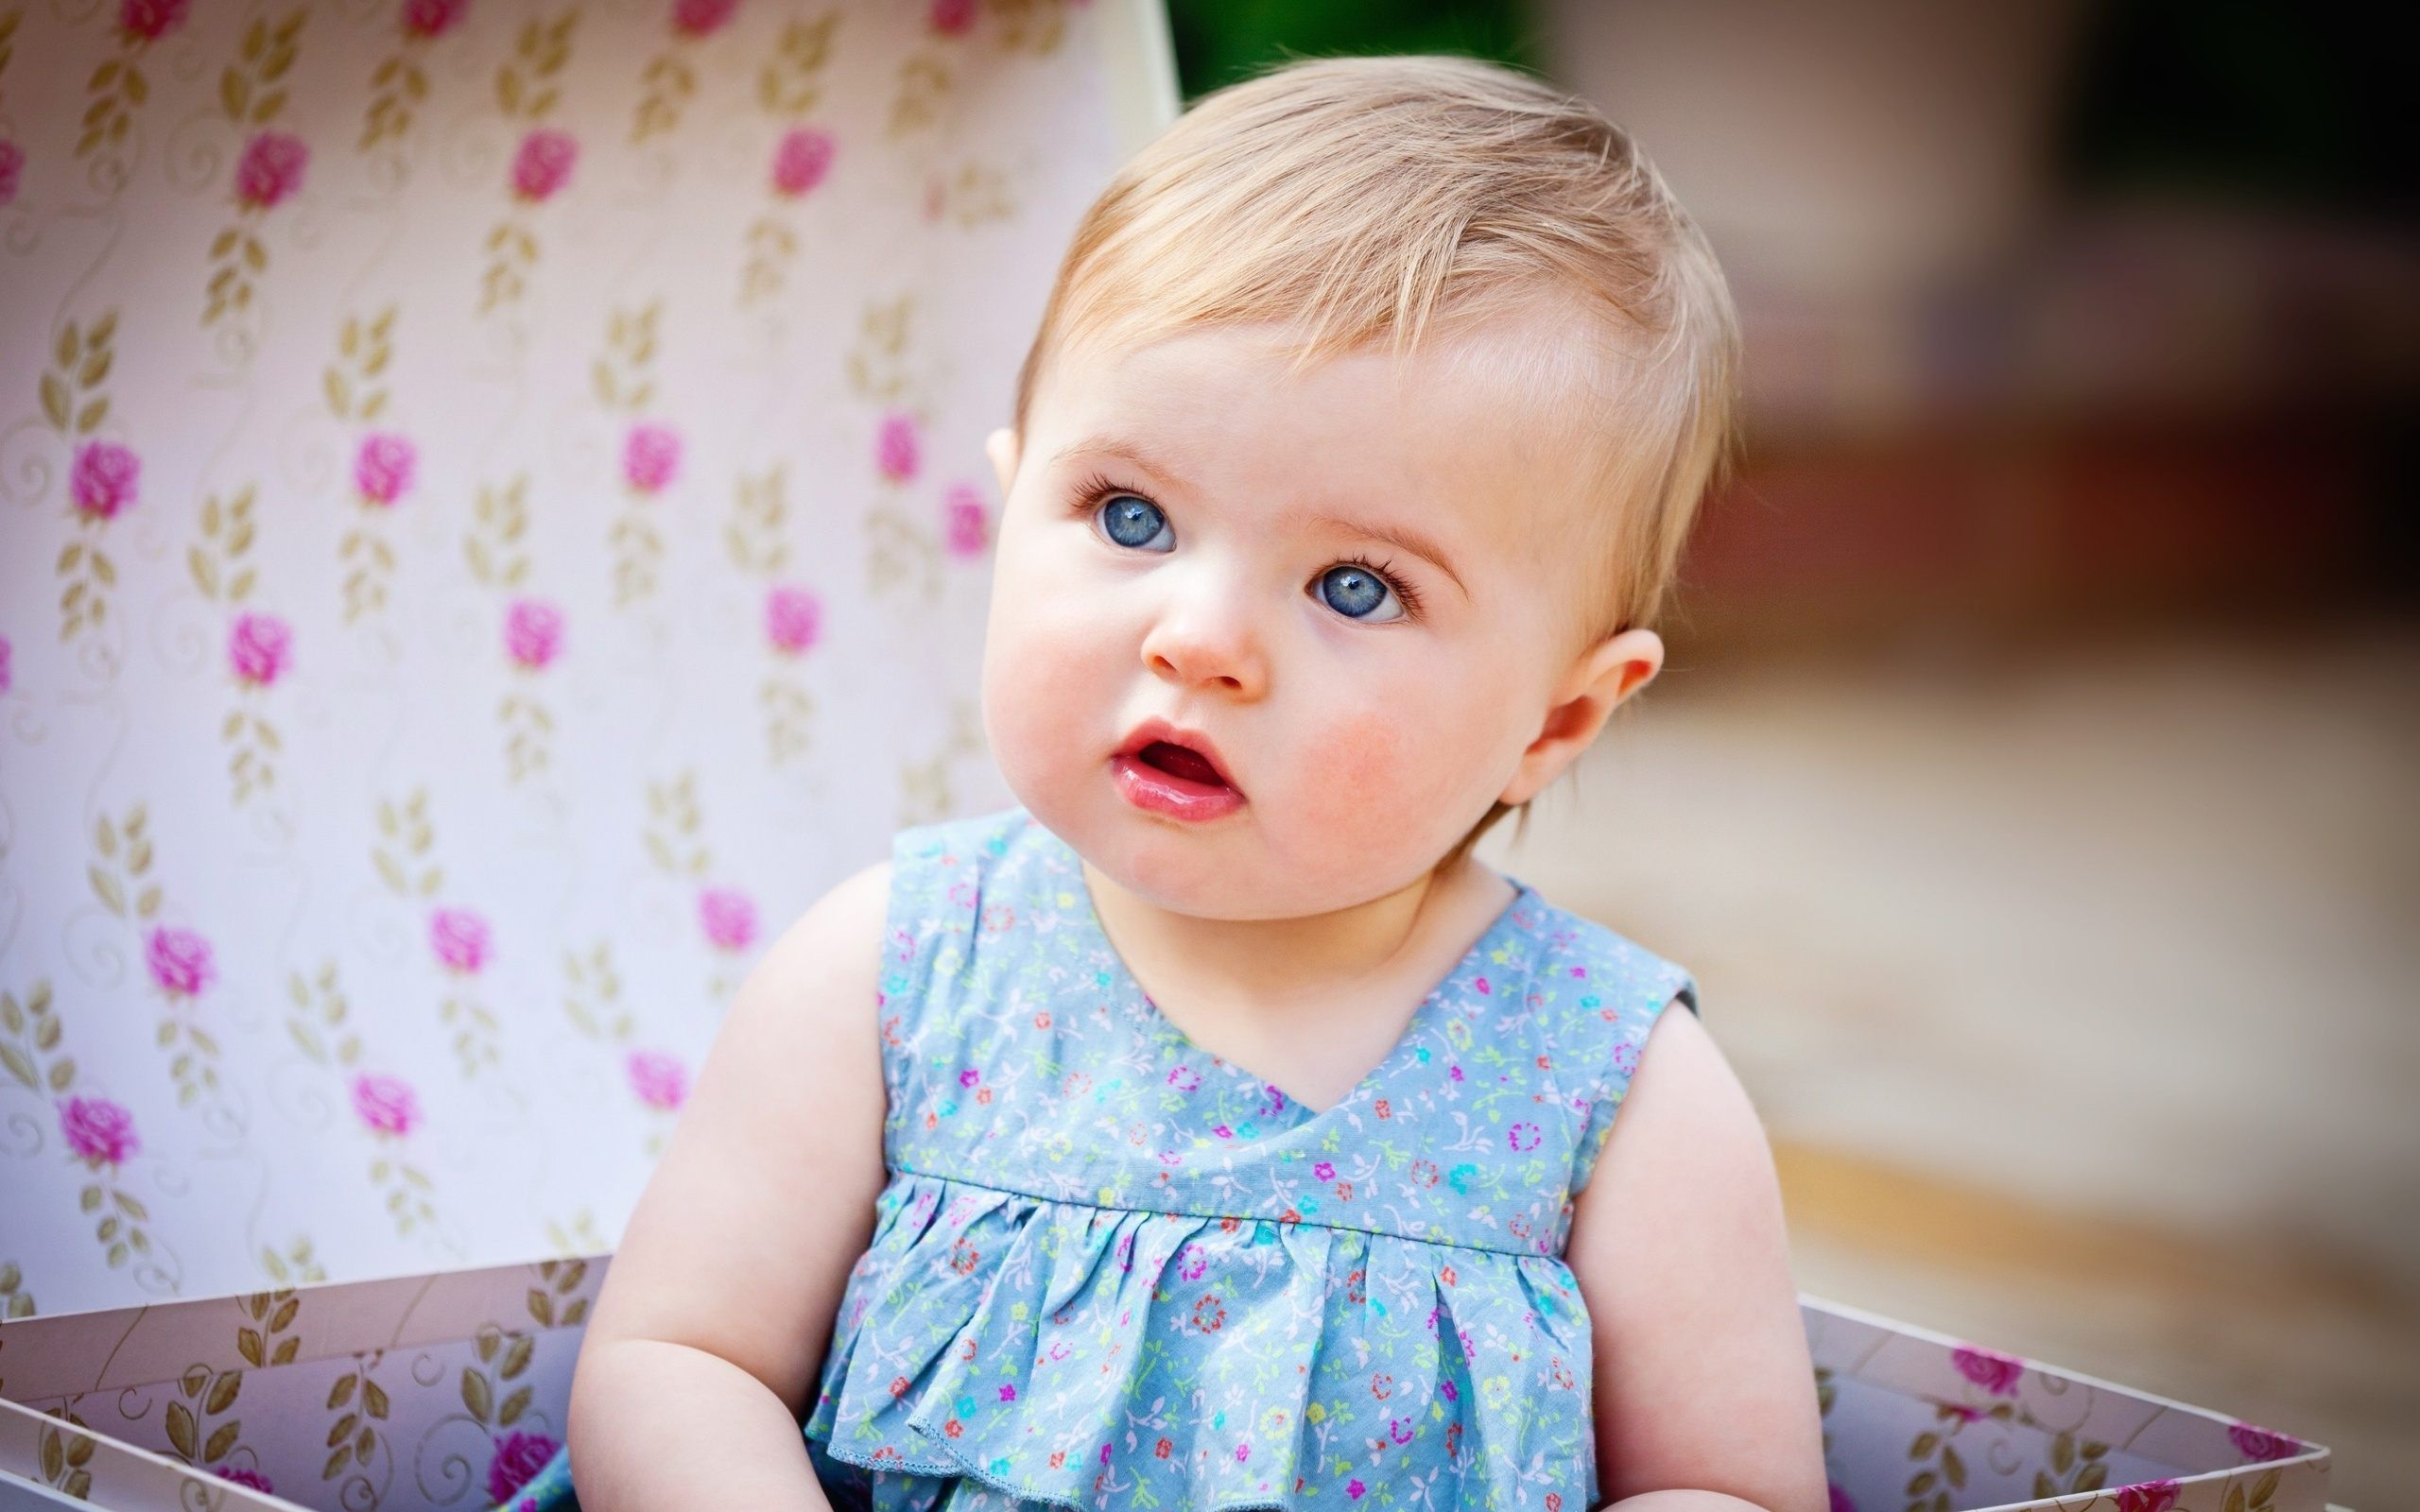 Baby Cute Blue Eyes Wallpaper Cute Baby rh